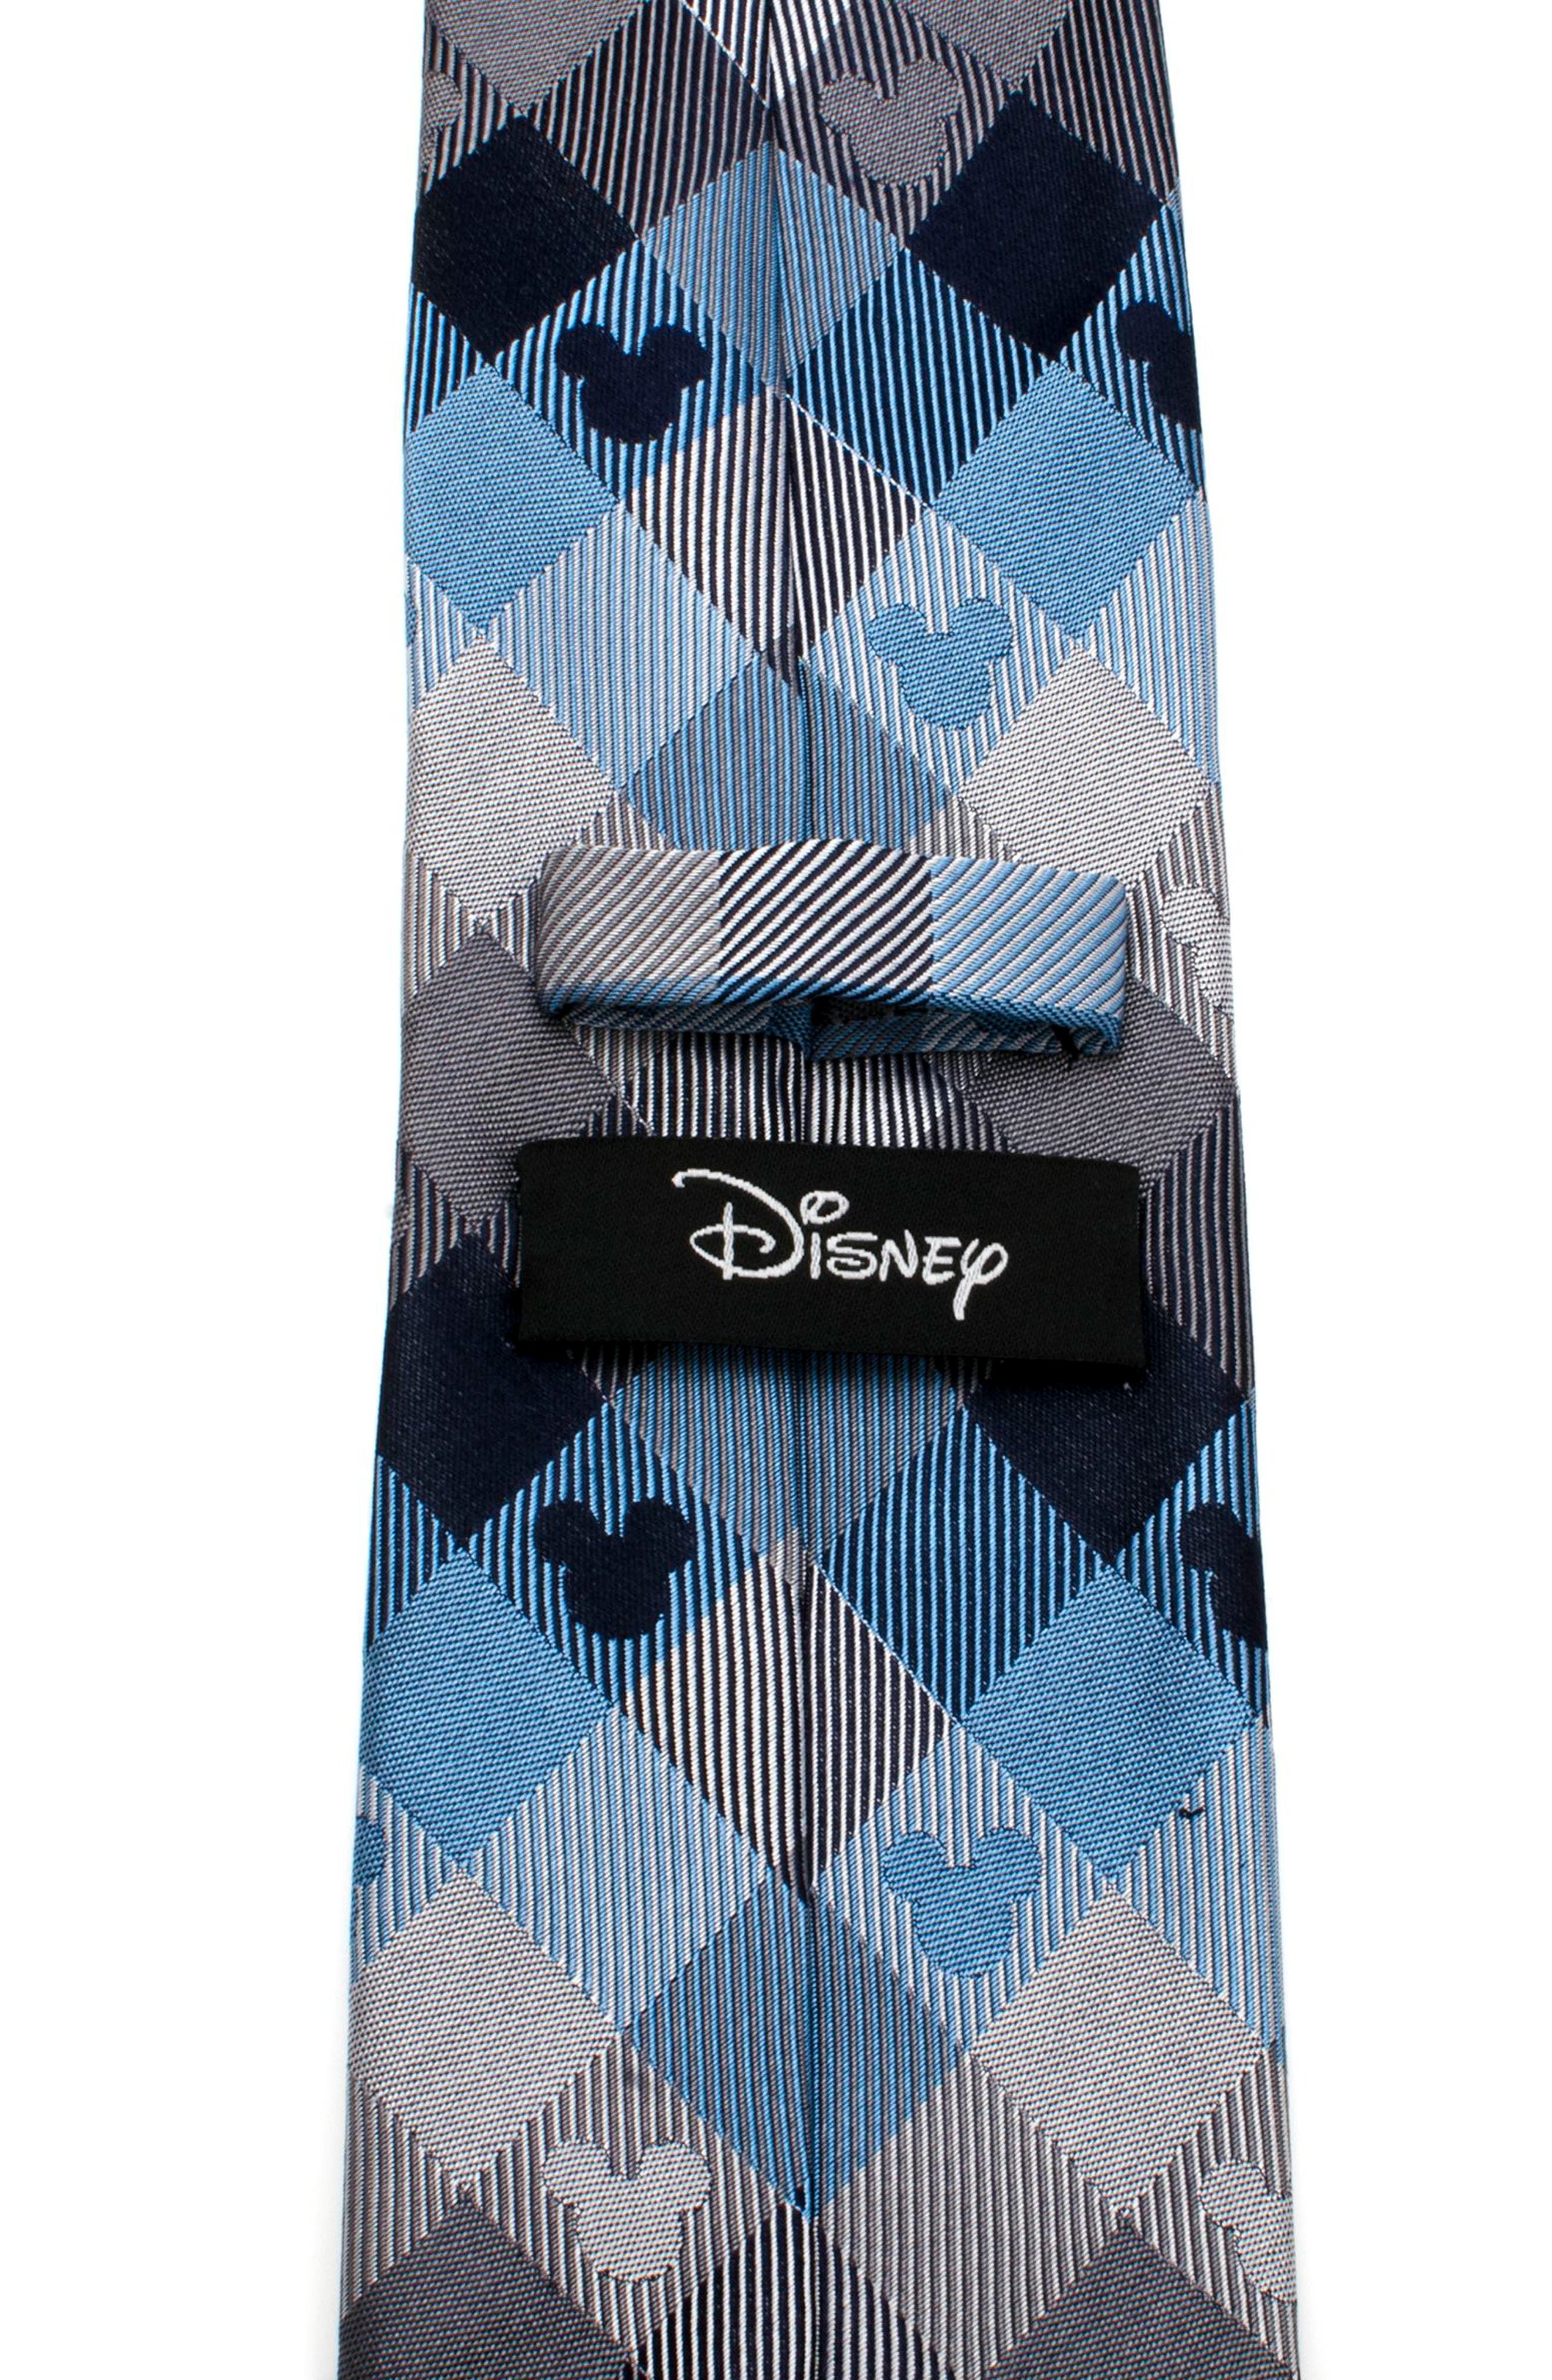 Mickey Mouse Plaid Silk Tie,                             Alternate thumbnail 4, color,                             BLUE/ GREY